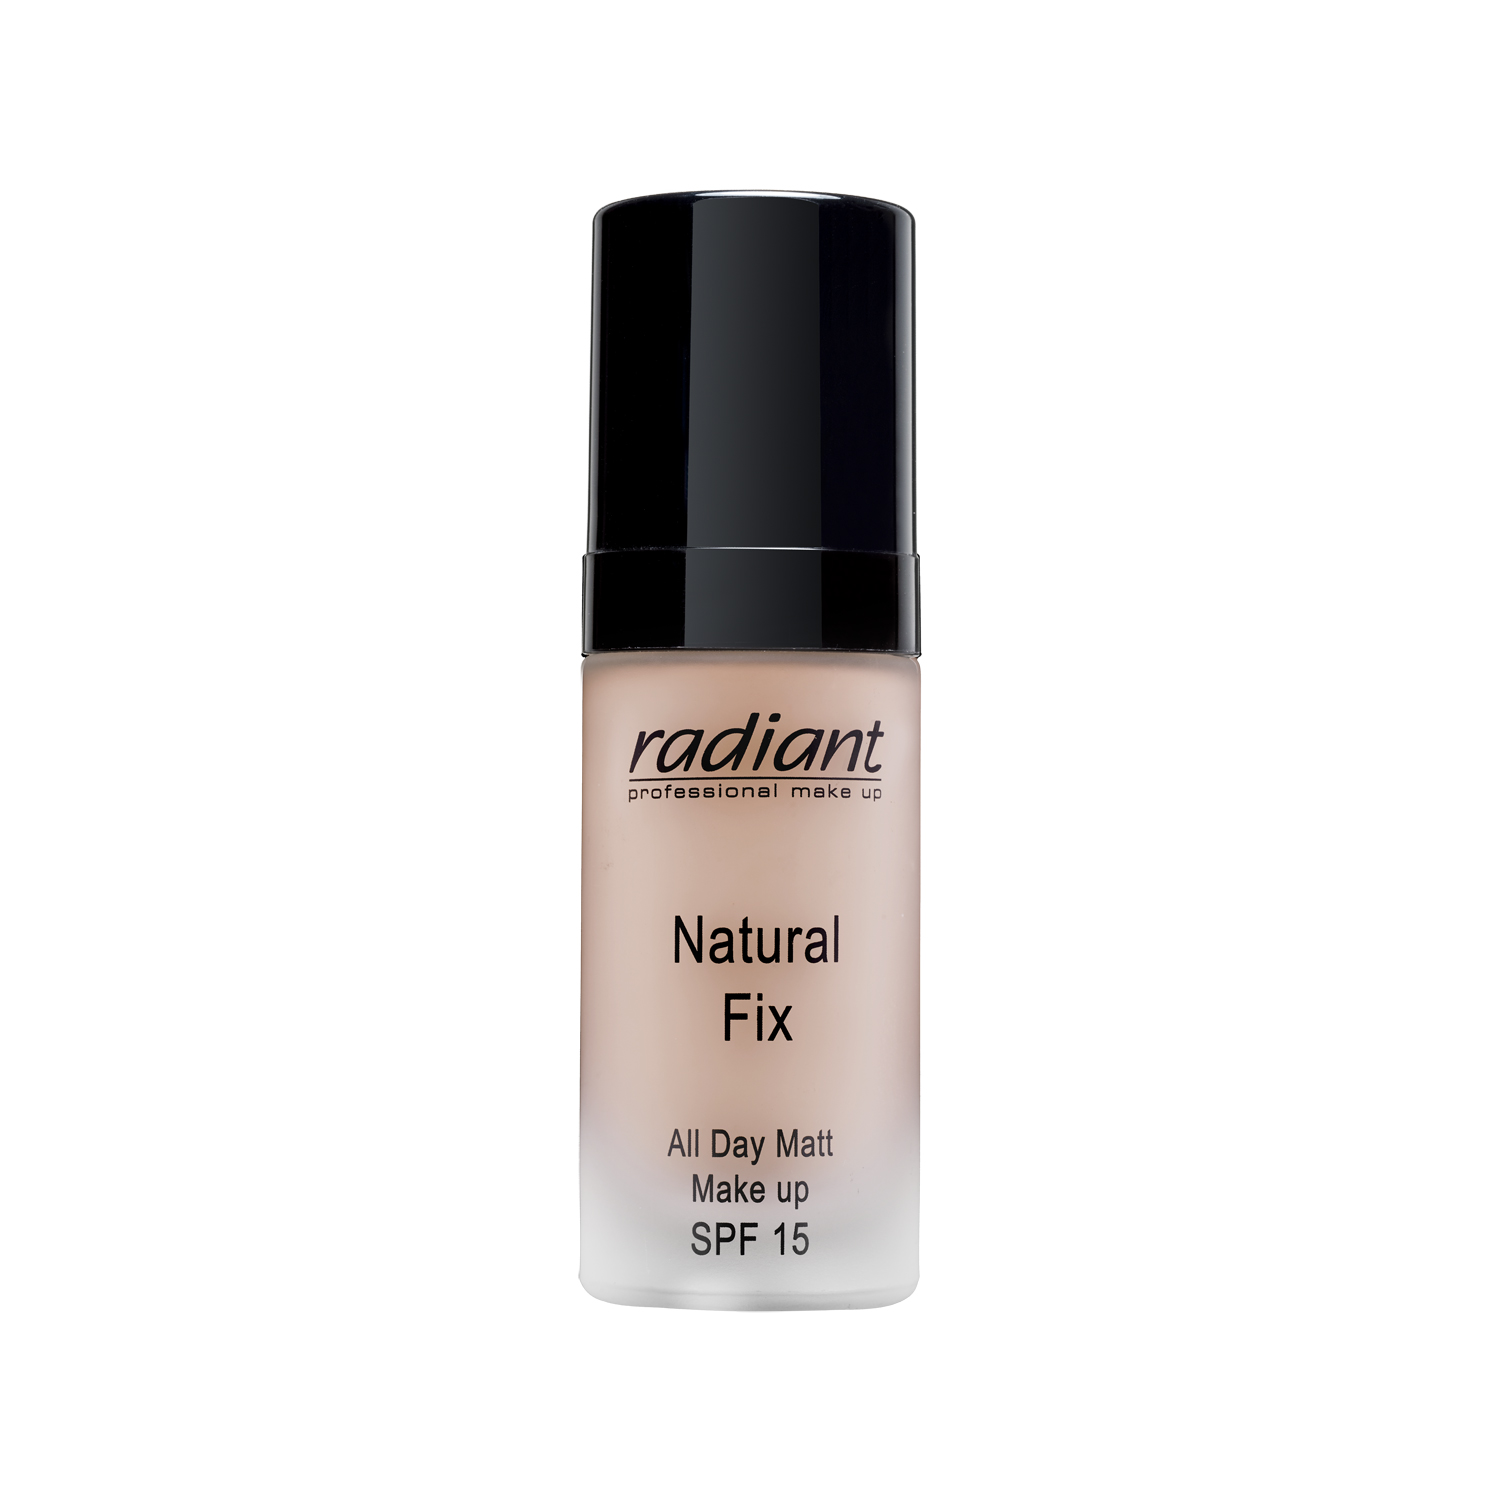 NATURAL FIX ALL DAY MATT MAKE UP SPF 15